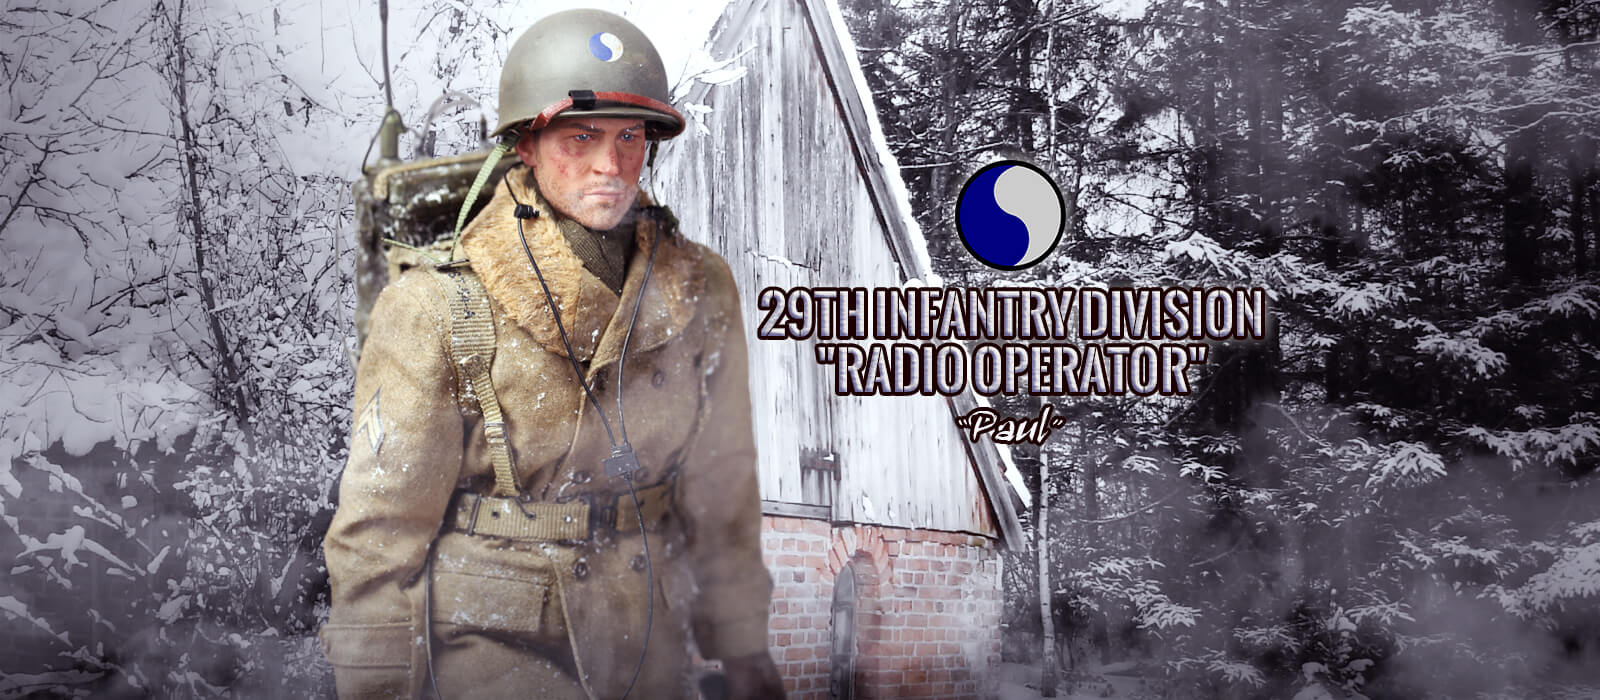 A80115S 29th Infantry Division Radio Operator Paul Christmas Version